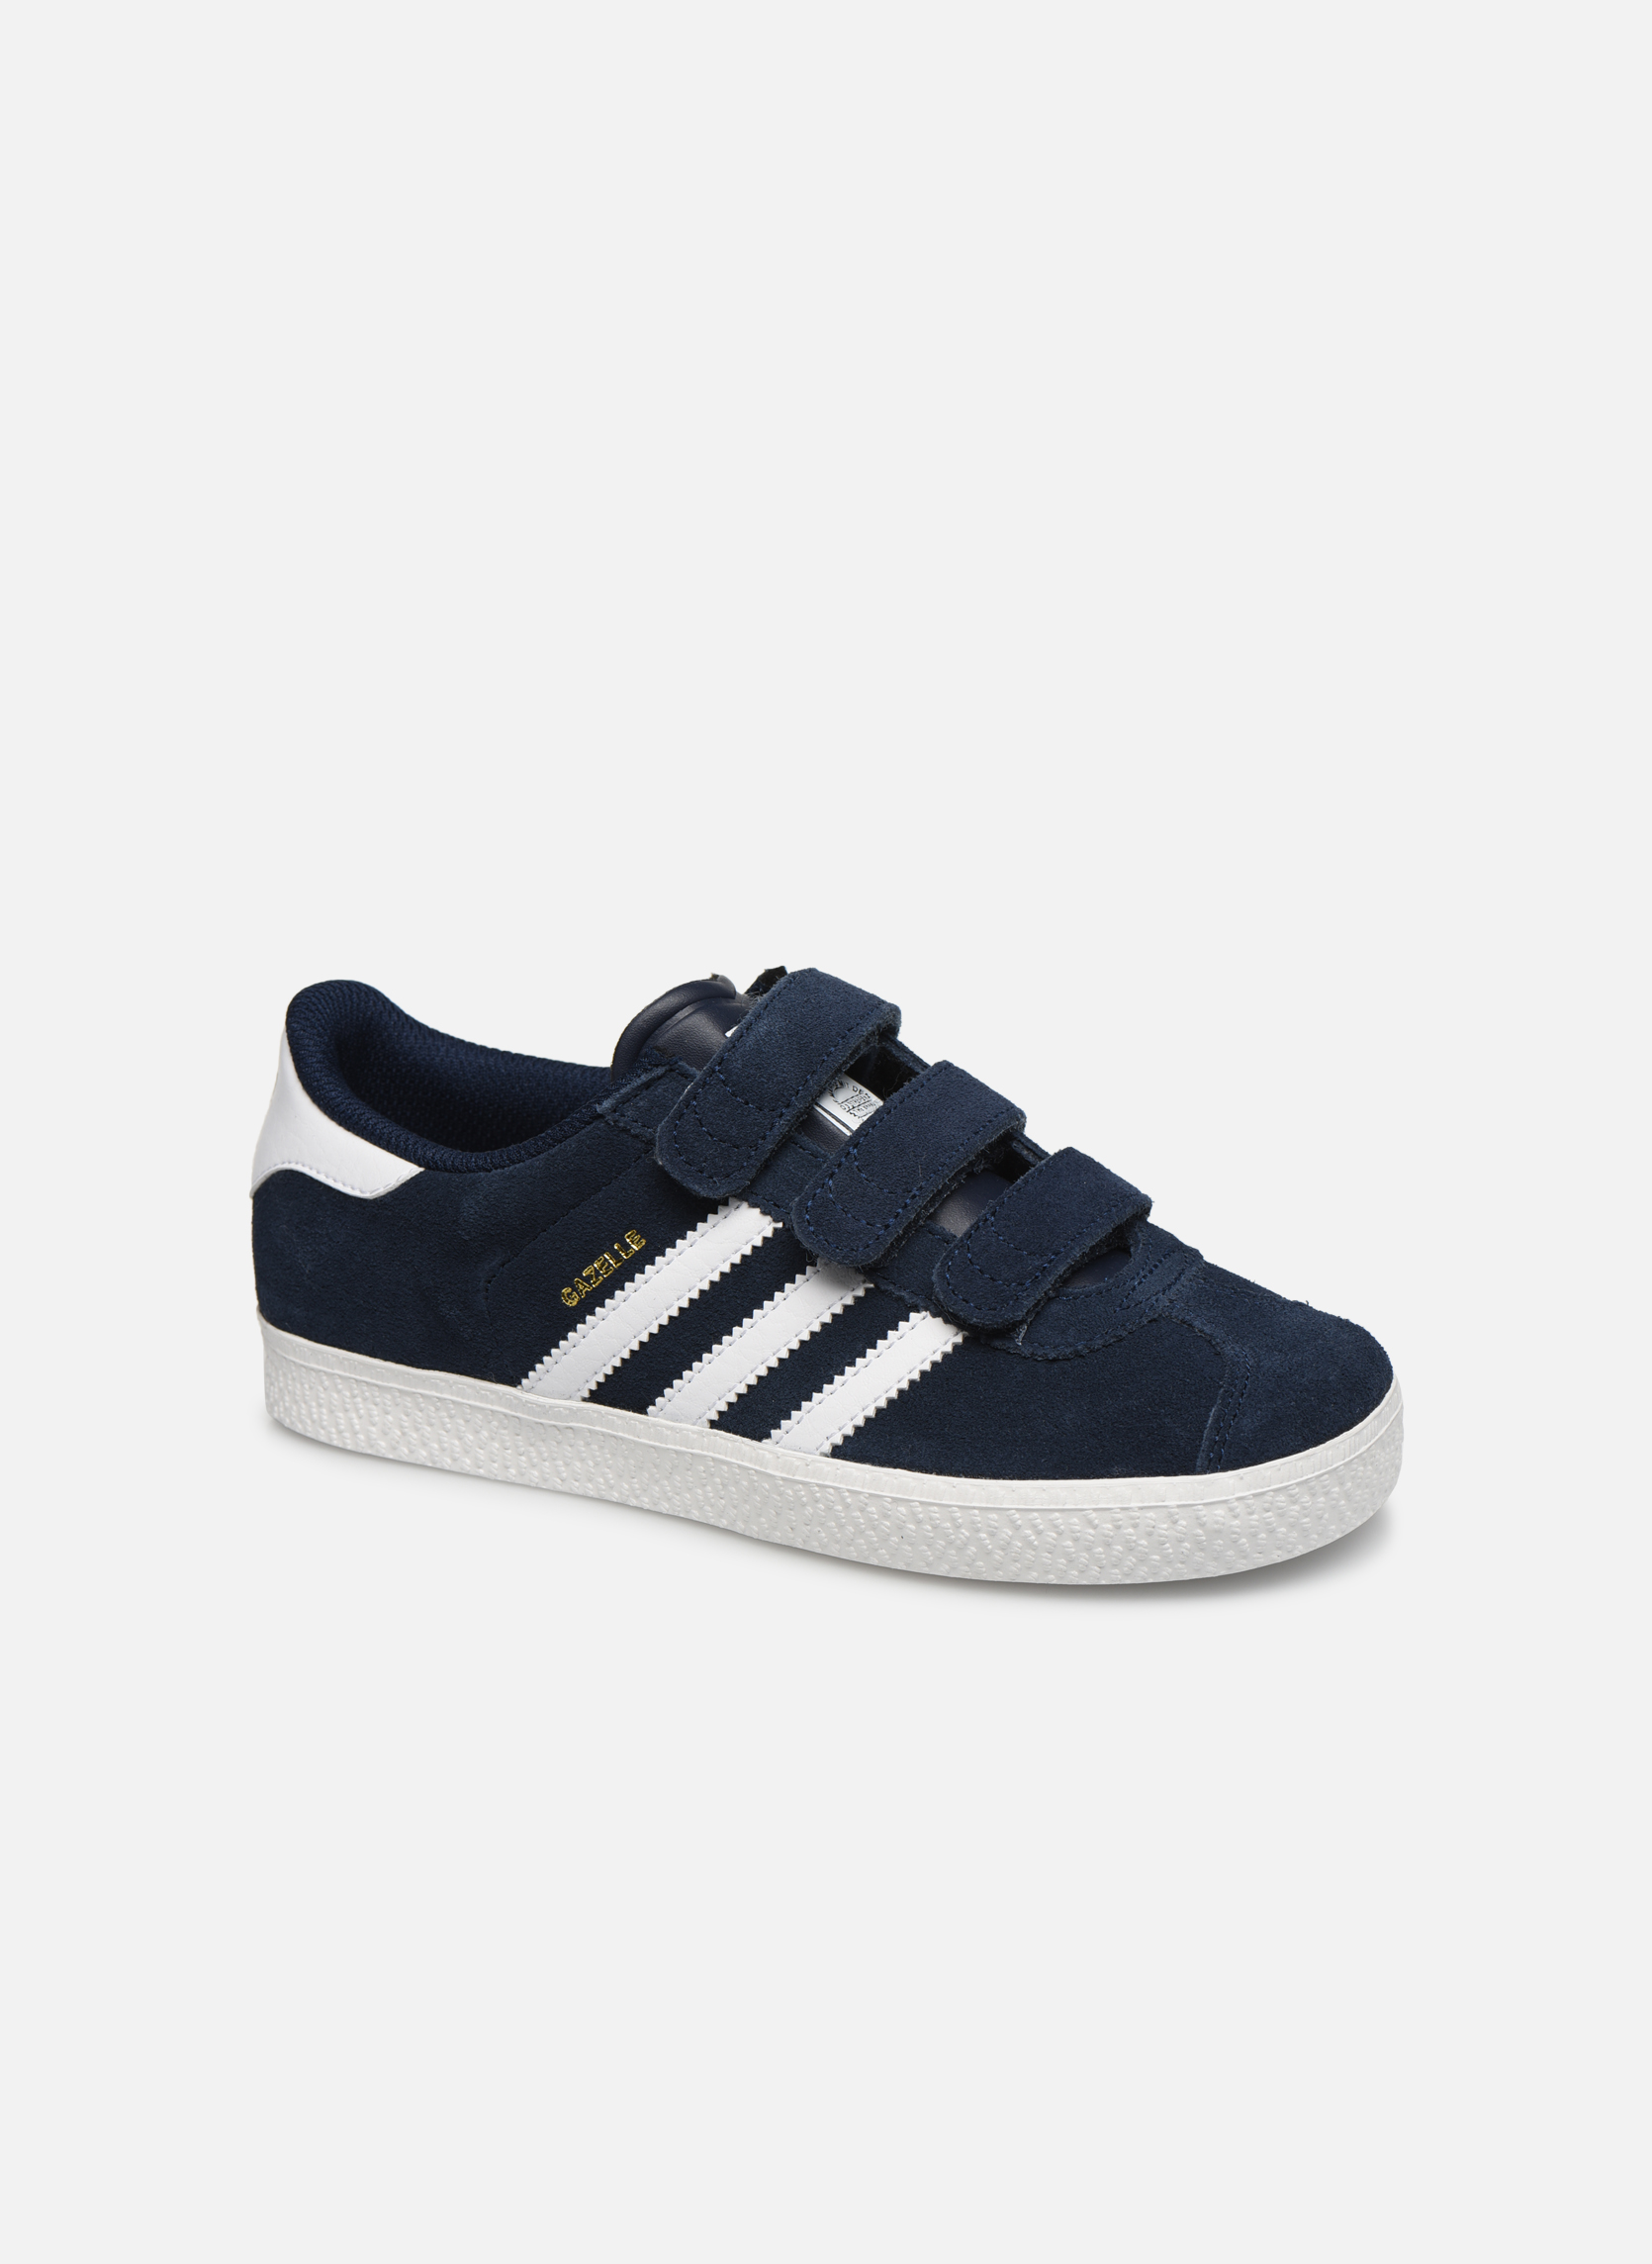 Adidas Originals GAZELLE 2 CF C